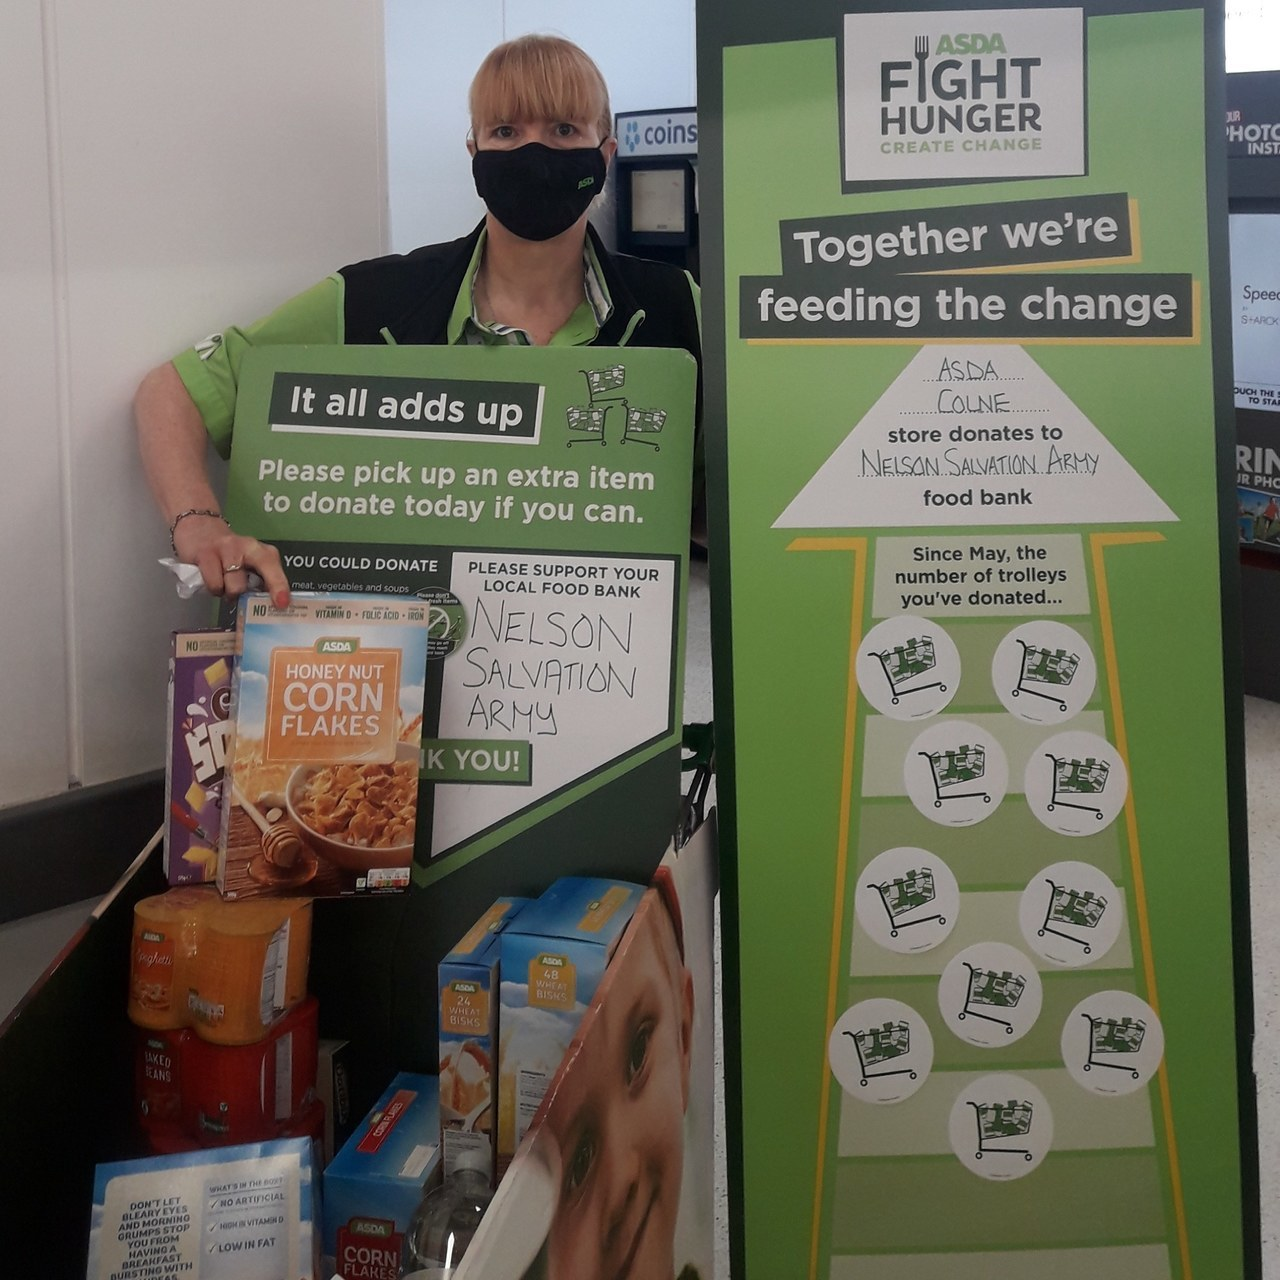 Were getting a fantastic response from our customers supporting our food bank | Asda Colne